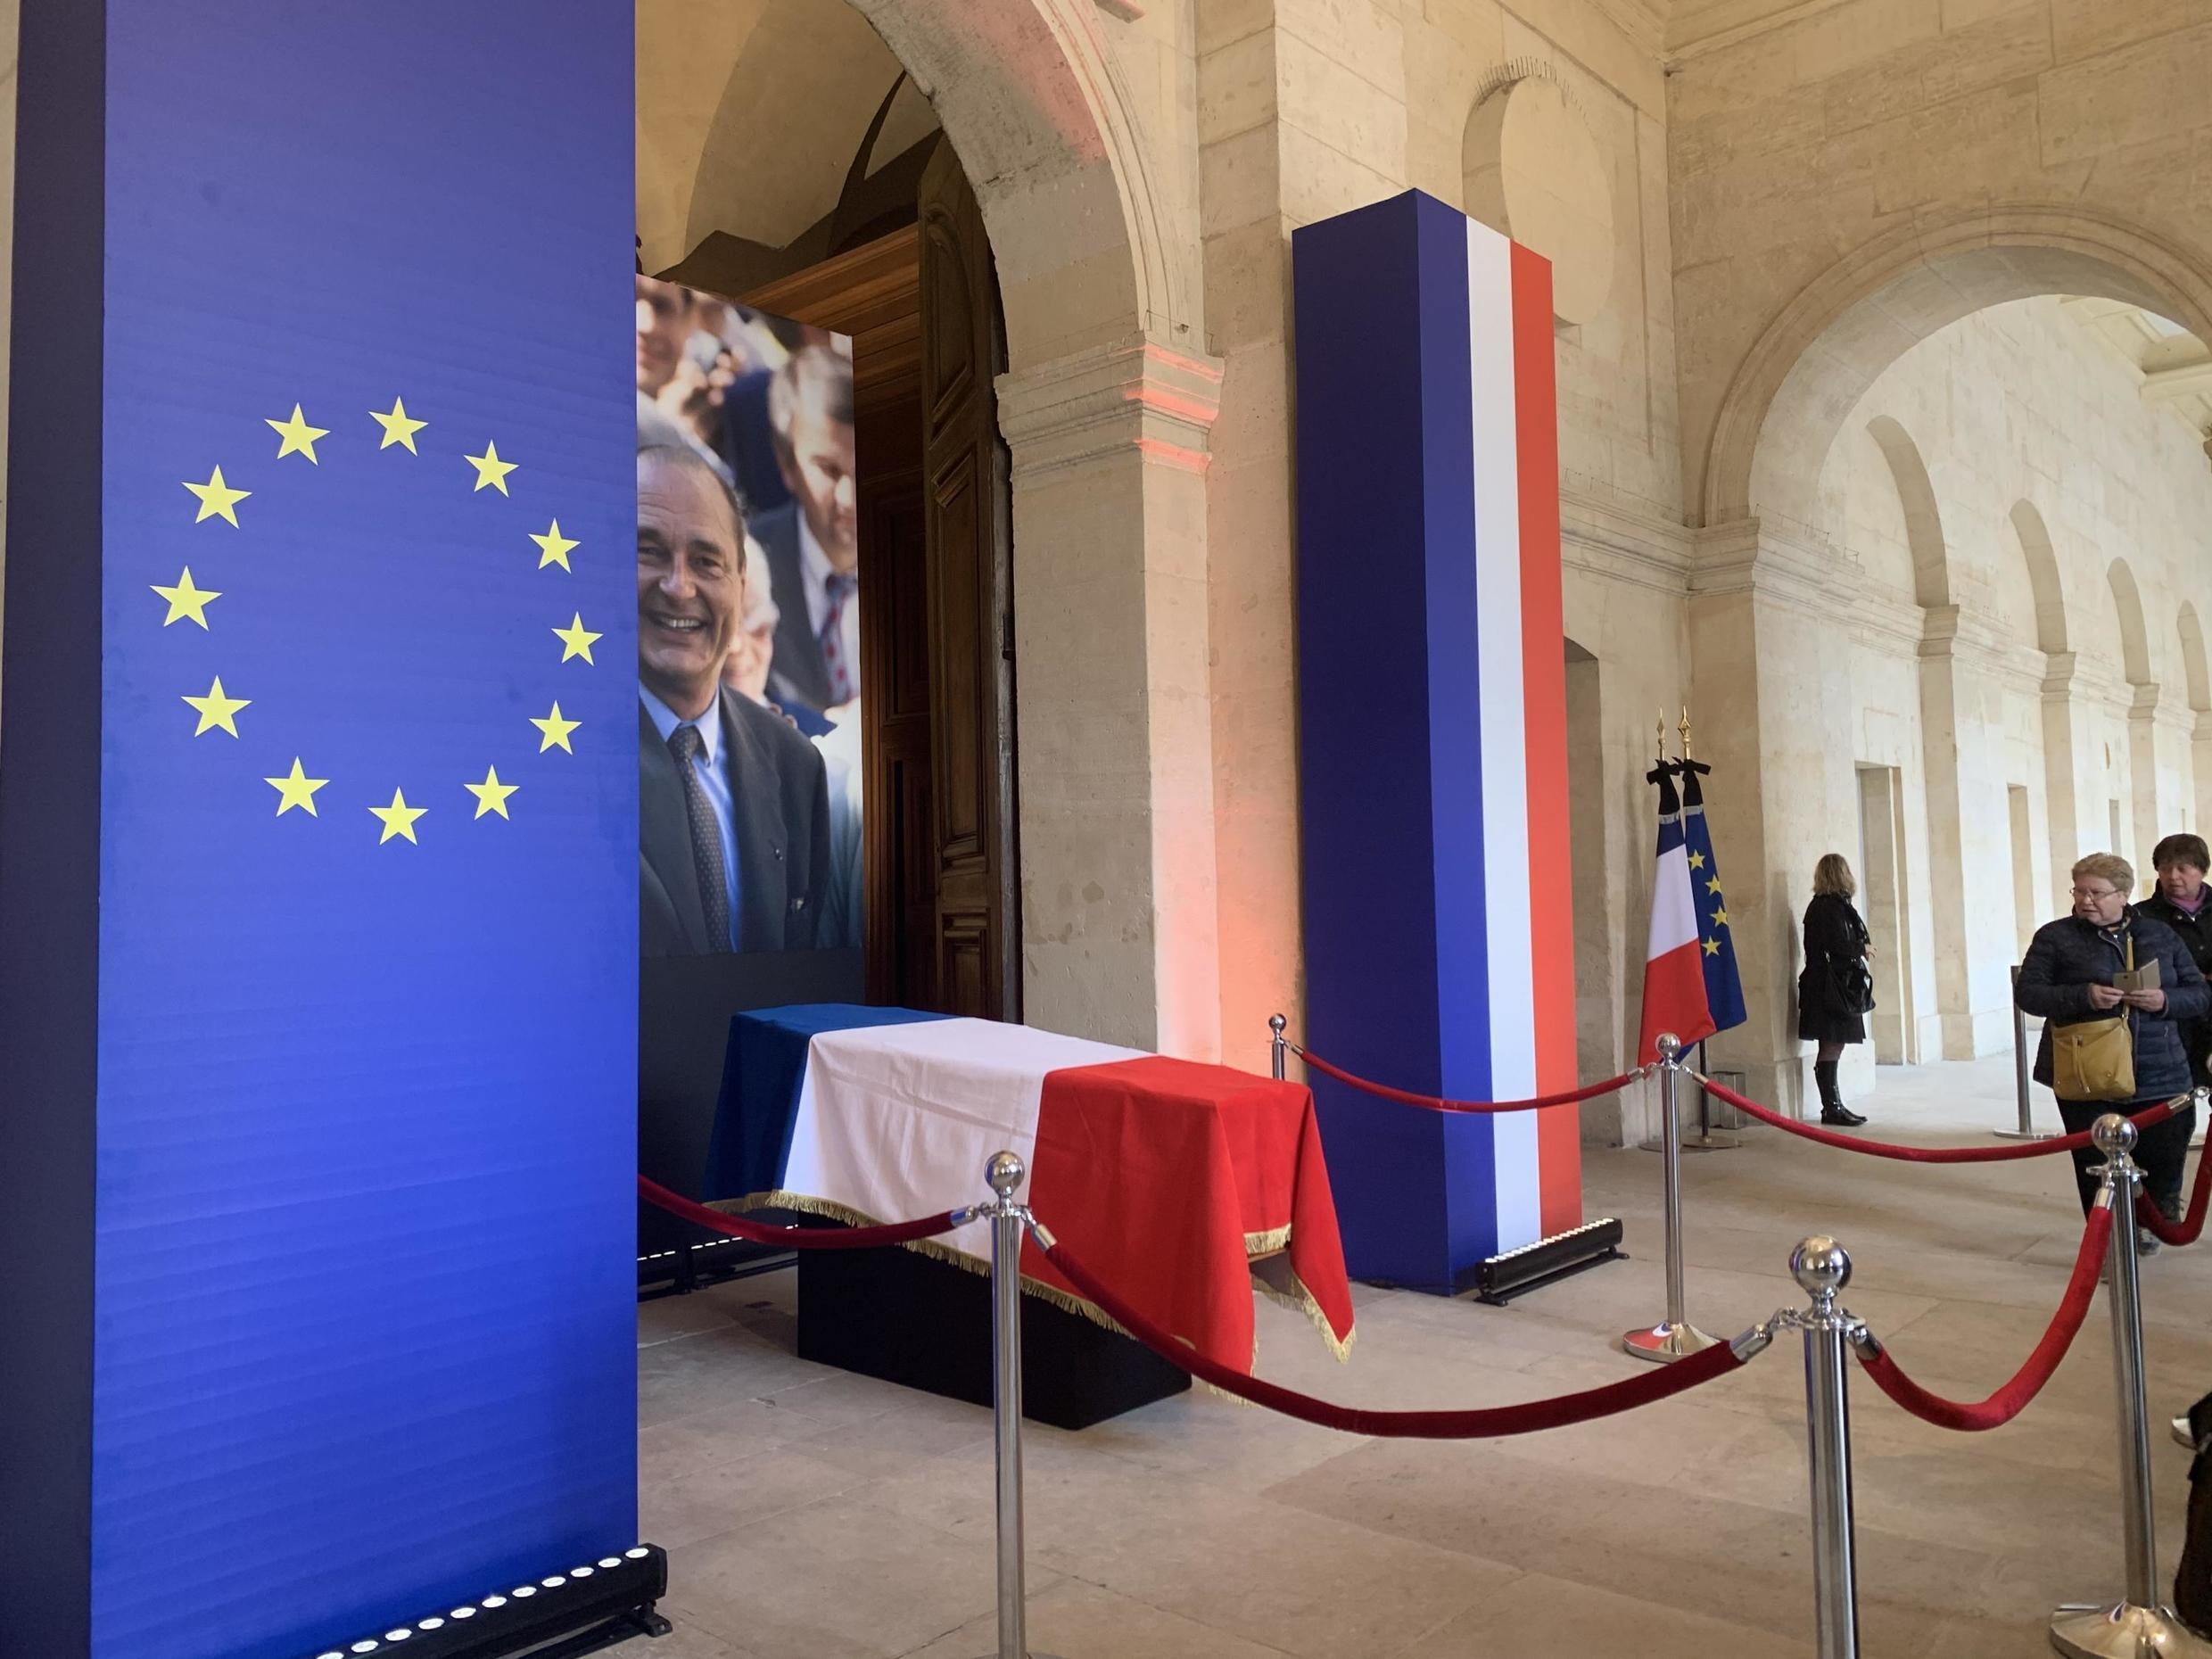 Homage to former French President Jacques Chirac, at Invalides in Paris, 29 September 2019